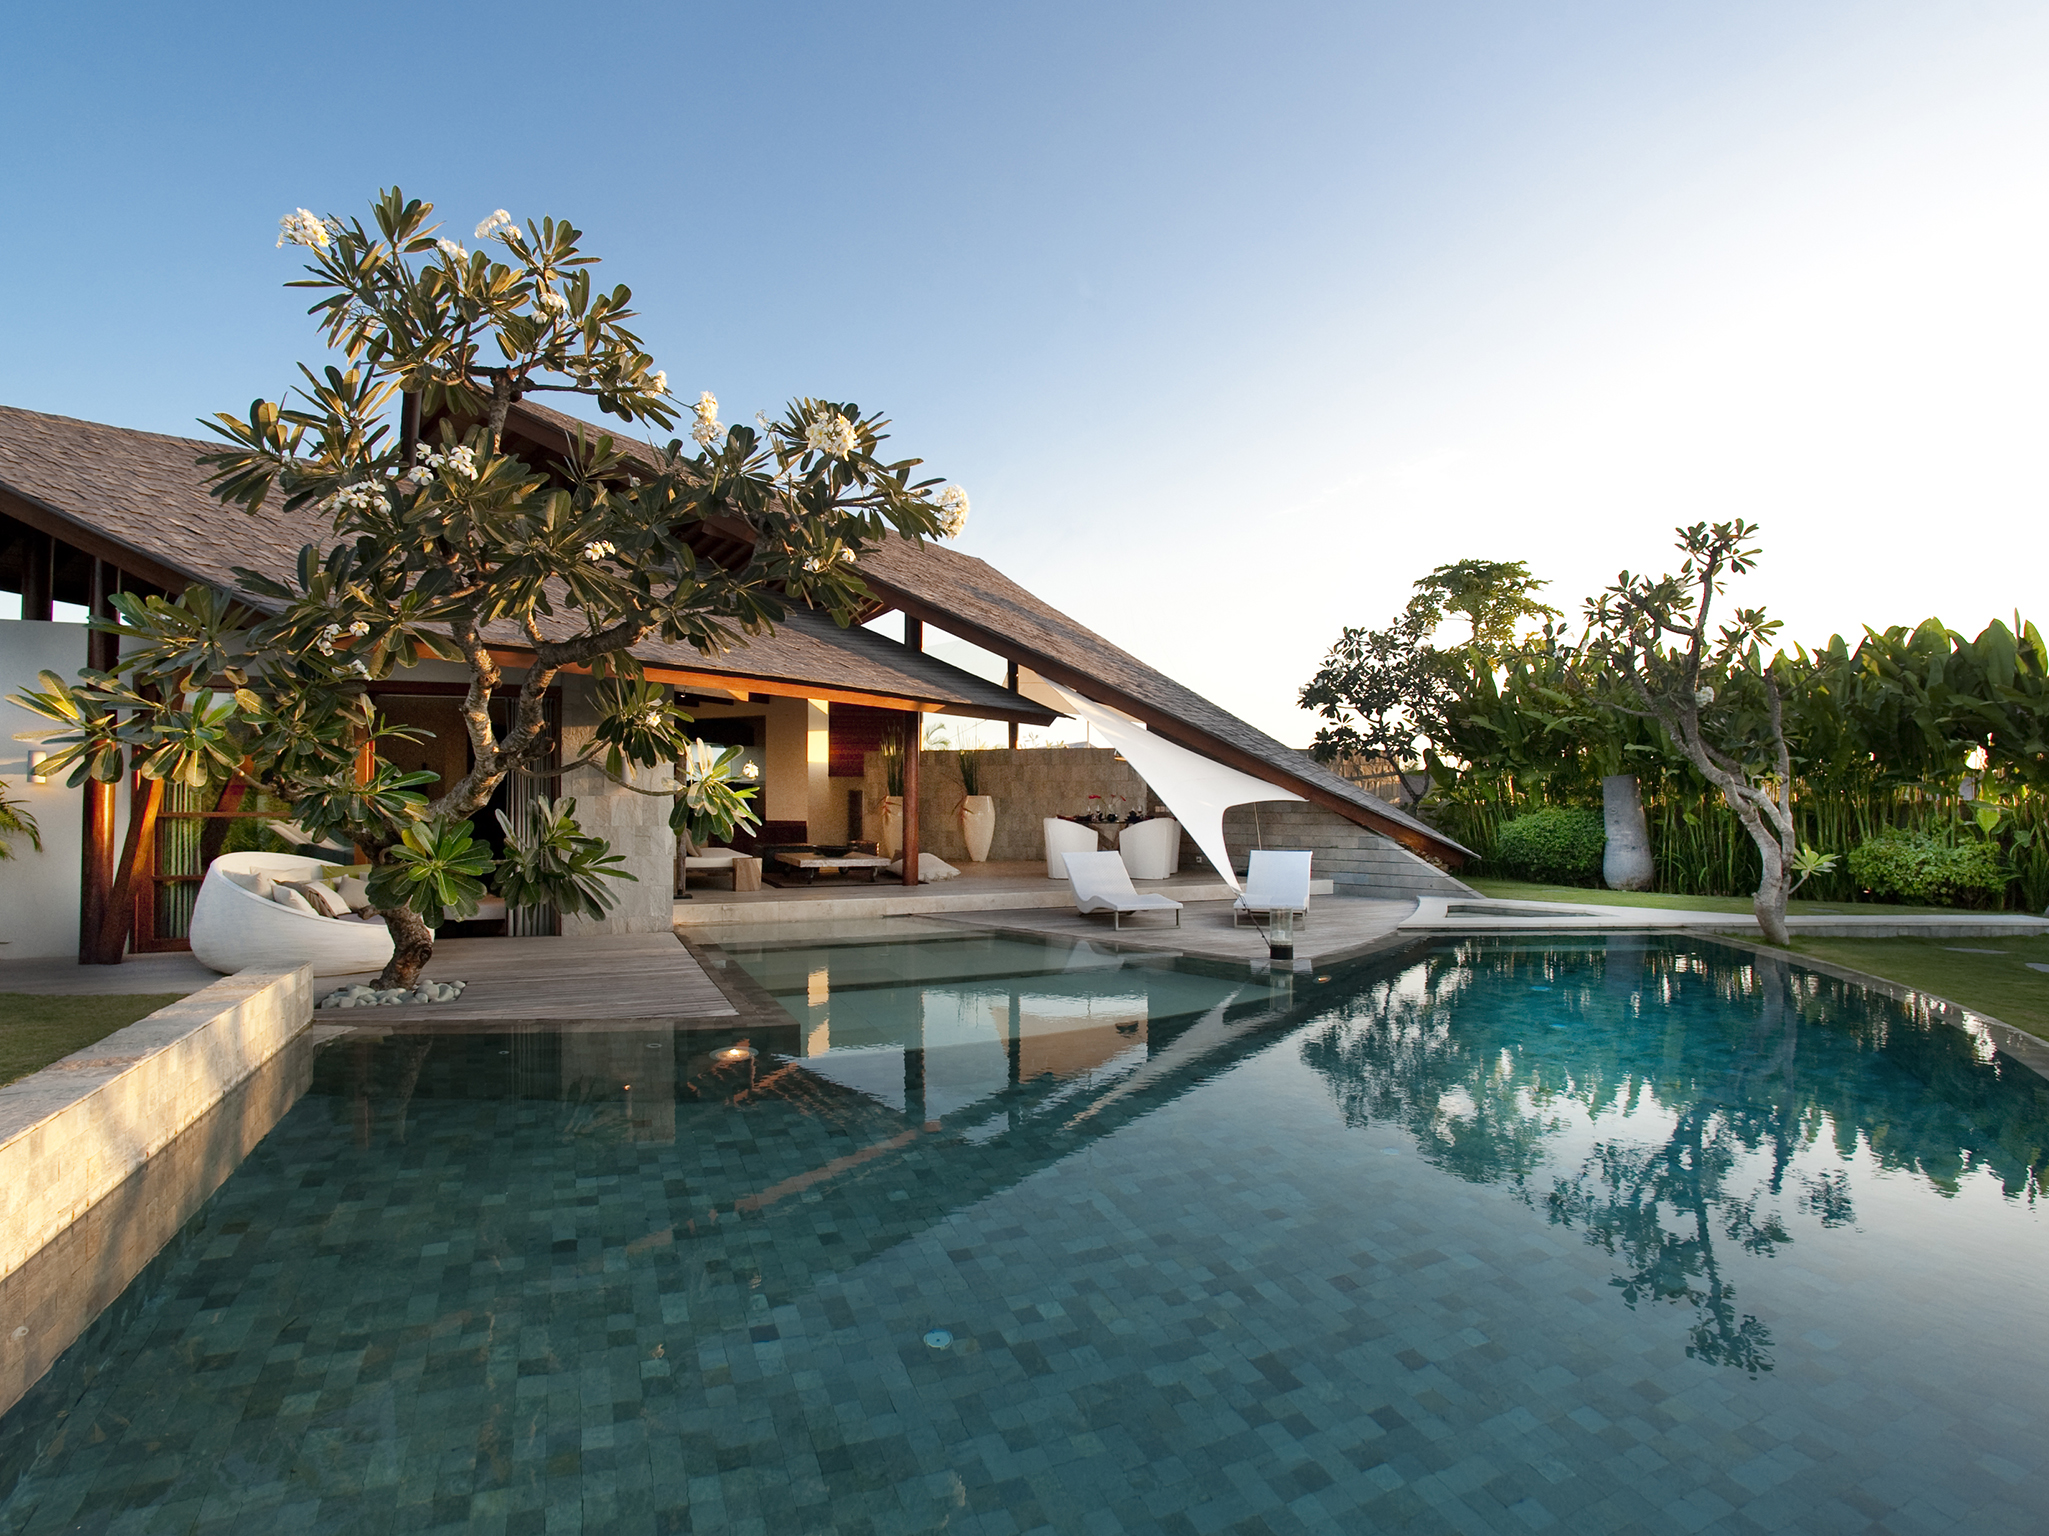 The Layar - 3 bedroom - Sunrise over the pool - The Layar - Villa 16 (3BR), Seminyak, Bali